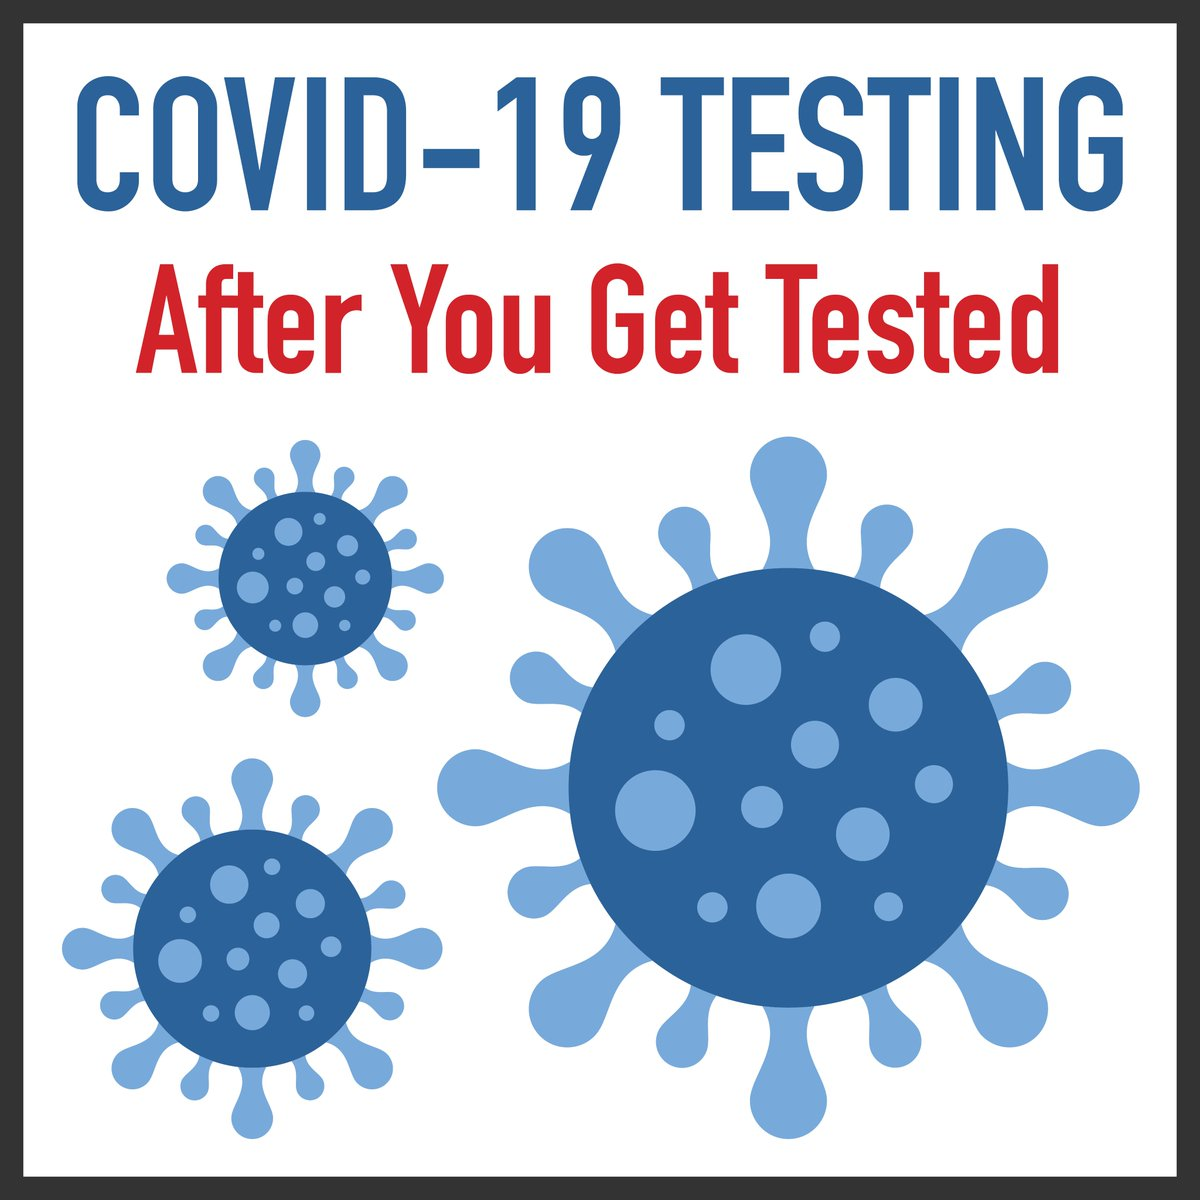 After you are tested for #COVID19, you should go home to self-isolate and remain there until you get your results from your healthcare provider. For more information on the testing process, visit .